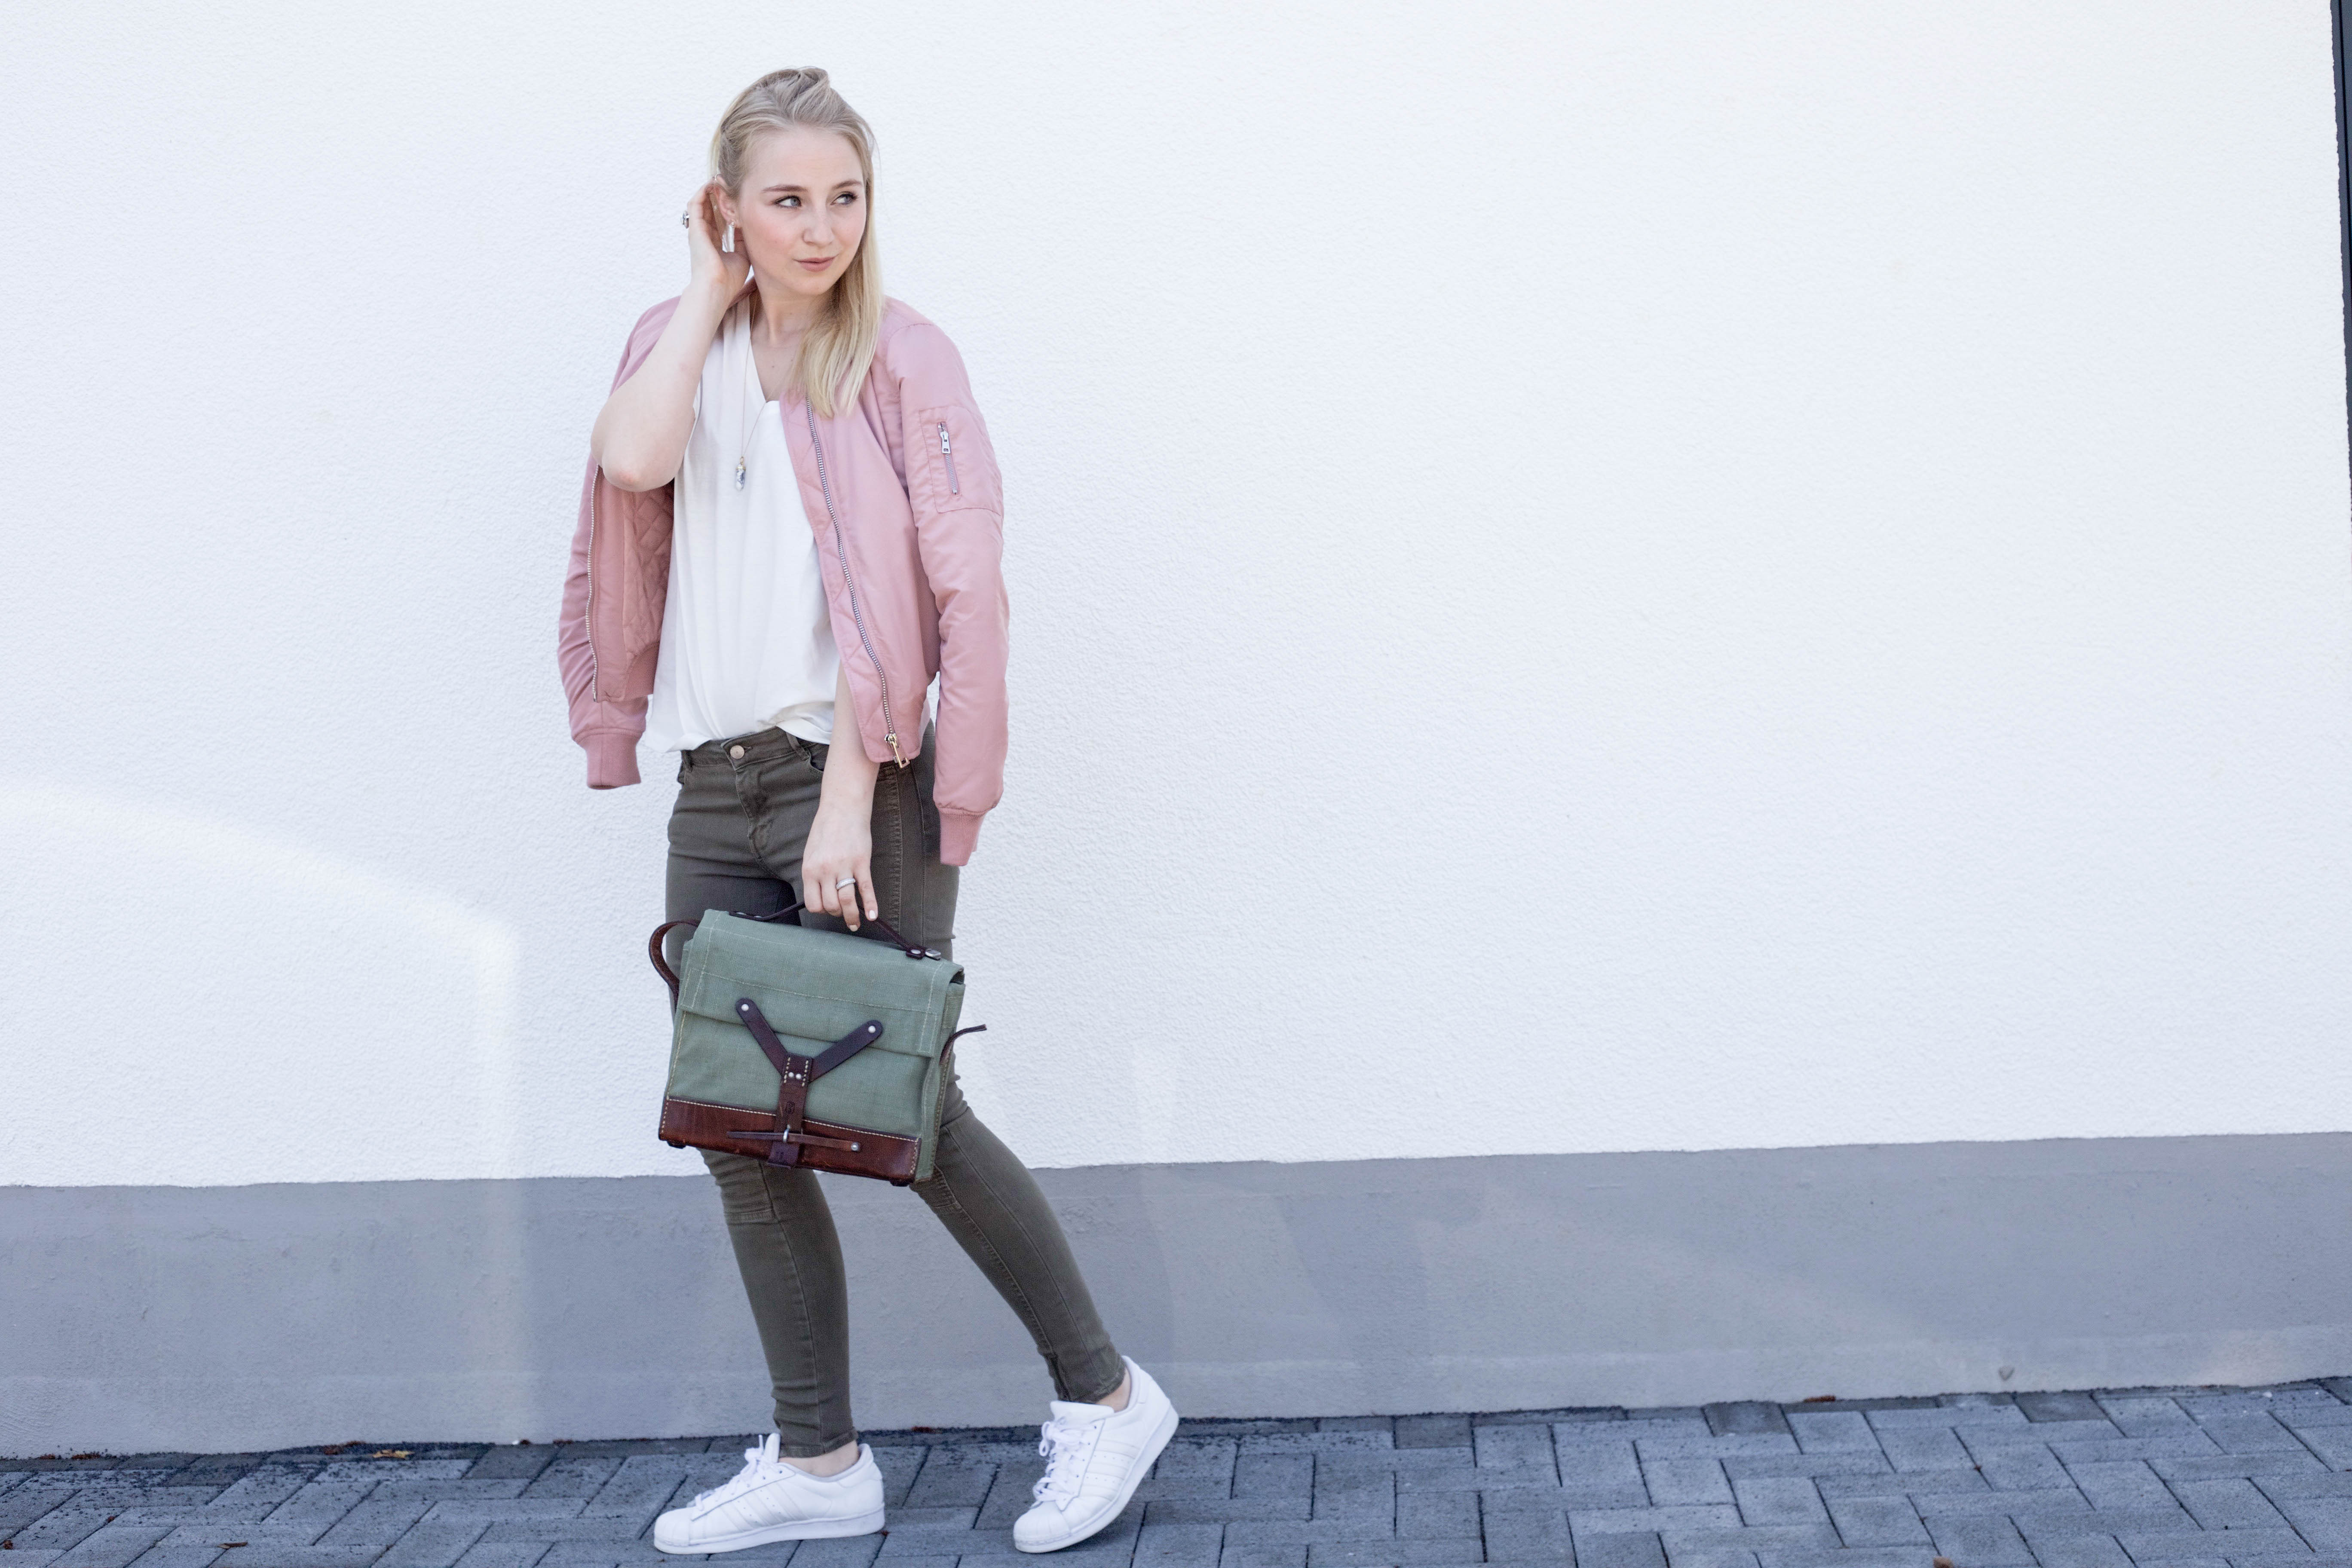 rosa-bomberjacke-weiße-sneaker-adidas superstars-outfit-fashionblog-cologne-berlin_0834